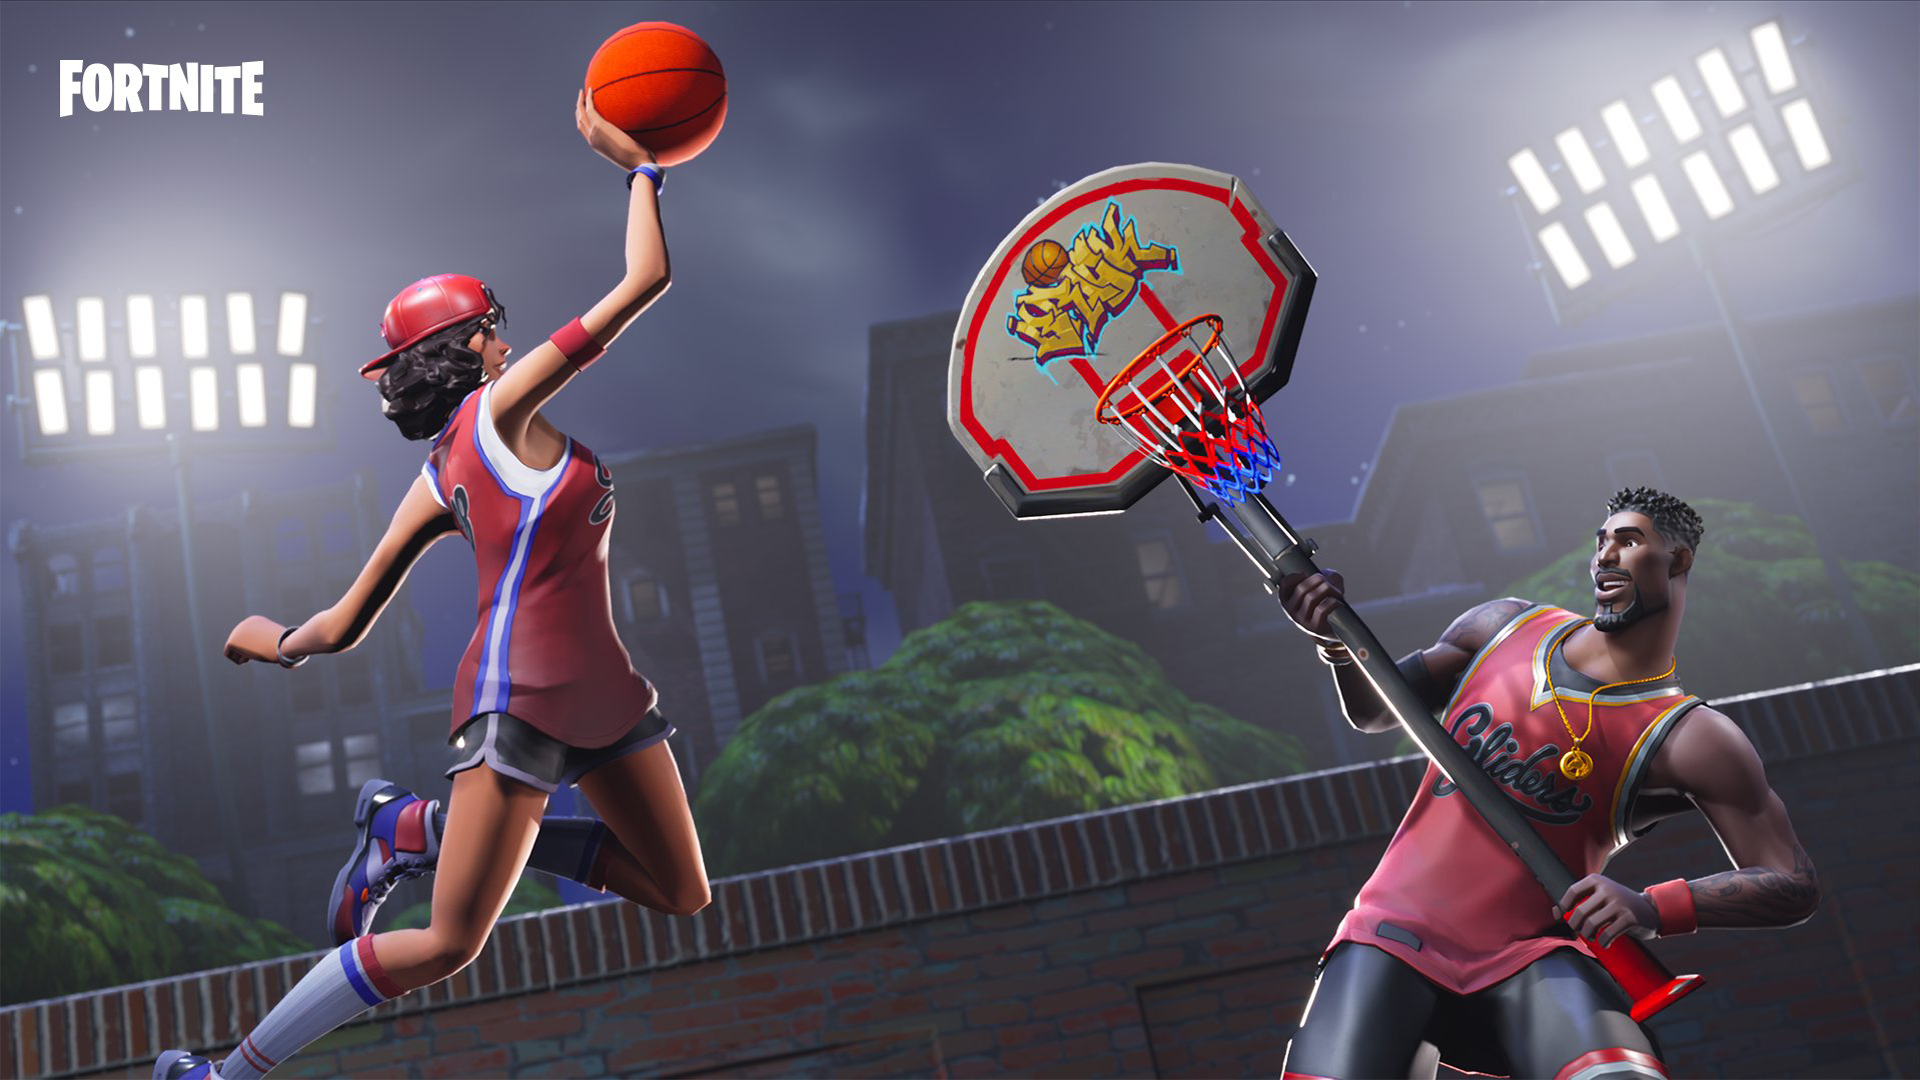 e81498286 Fortnite Basketball Skins - Jumpshot   Triple Threat